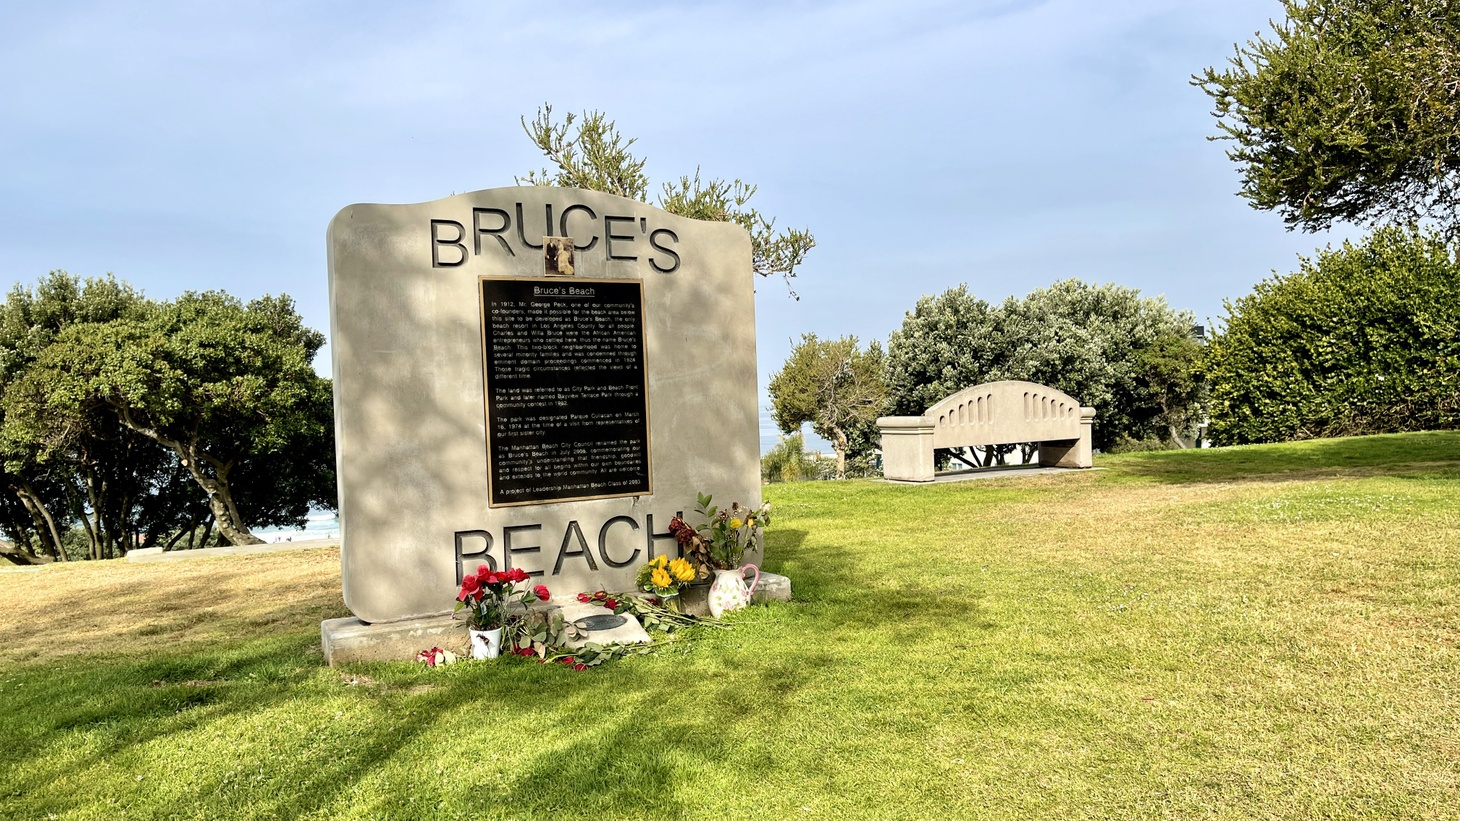 Charles and Willa Bruce bought a beachfront plot of land for about $1,000 in 1912. But in 1924, Manhattan Beach condemned and seized the land. Now Gov. Newsom has signed a law that transfers ownership of the parcel to Willa and Charles Bruce's four remaining direct descendants.